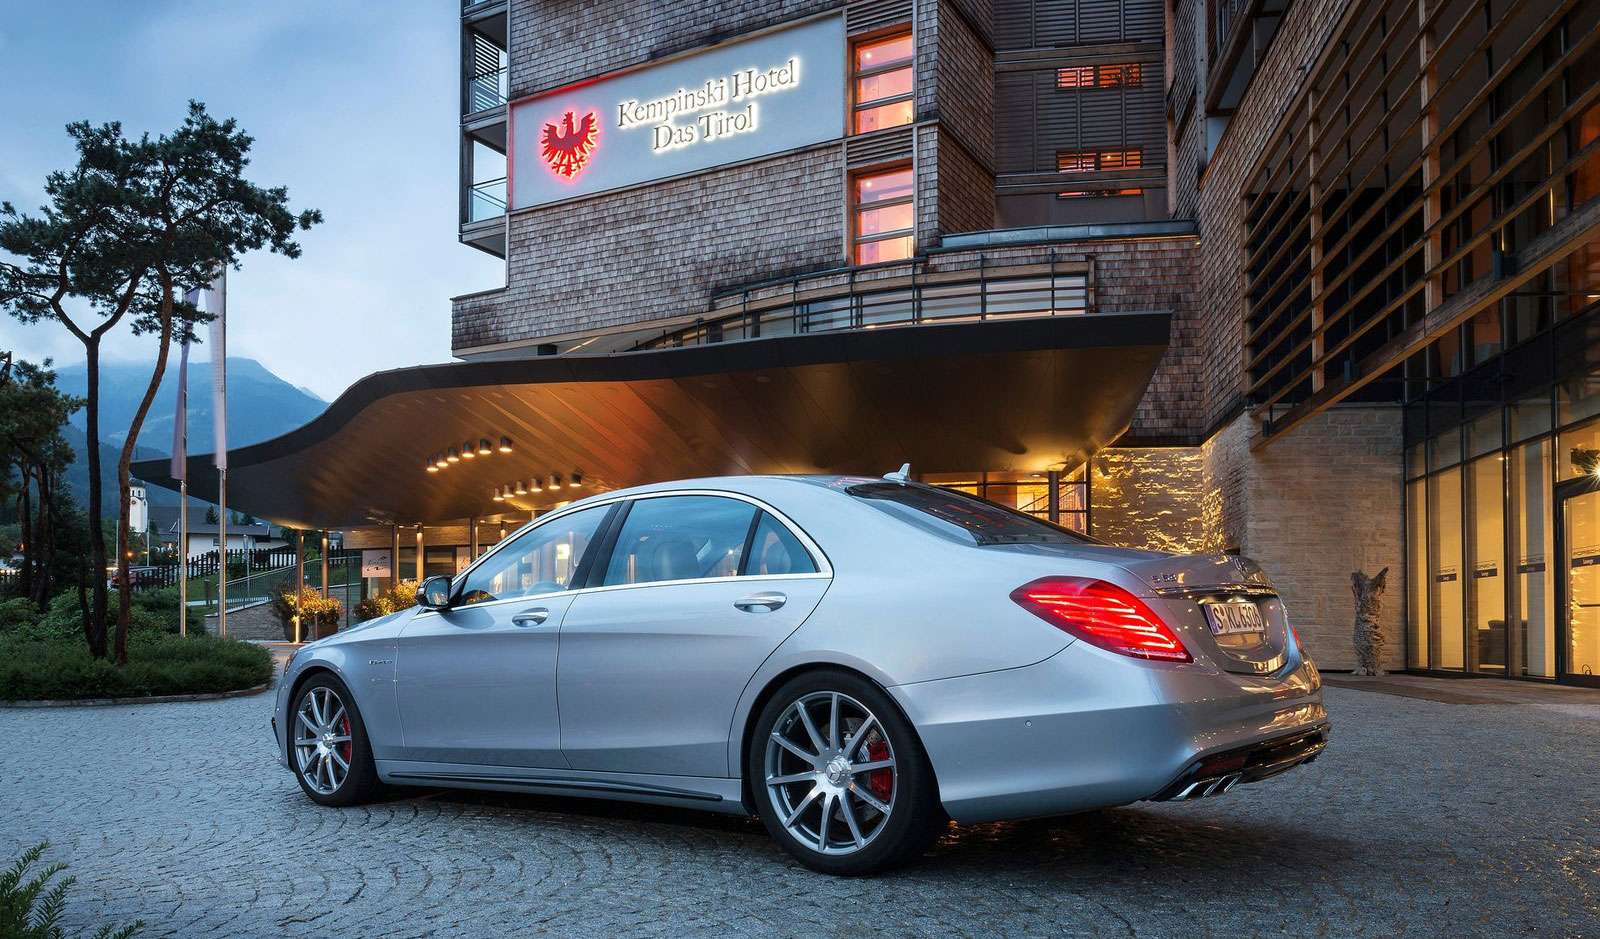 Mercedes benz s 63 amg like a boss in austria image 201945 for Mercedes benz austria